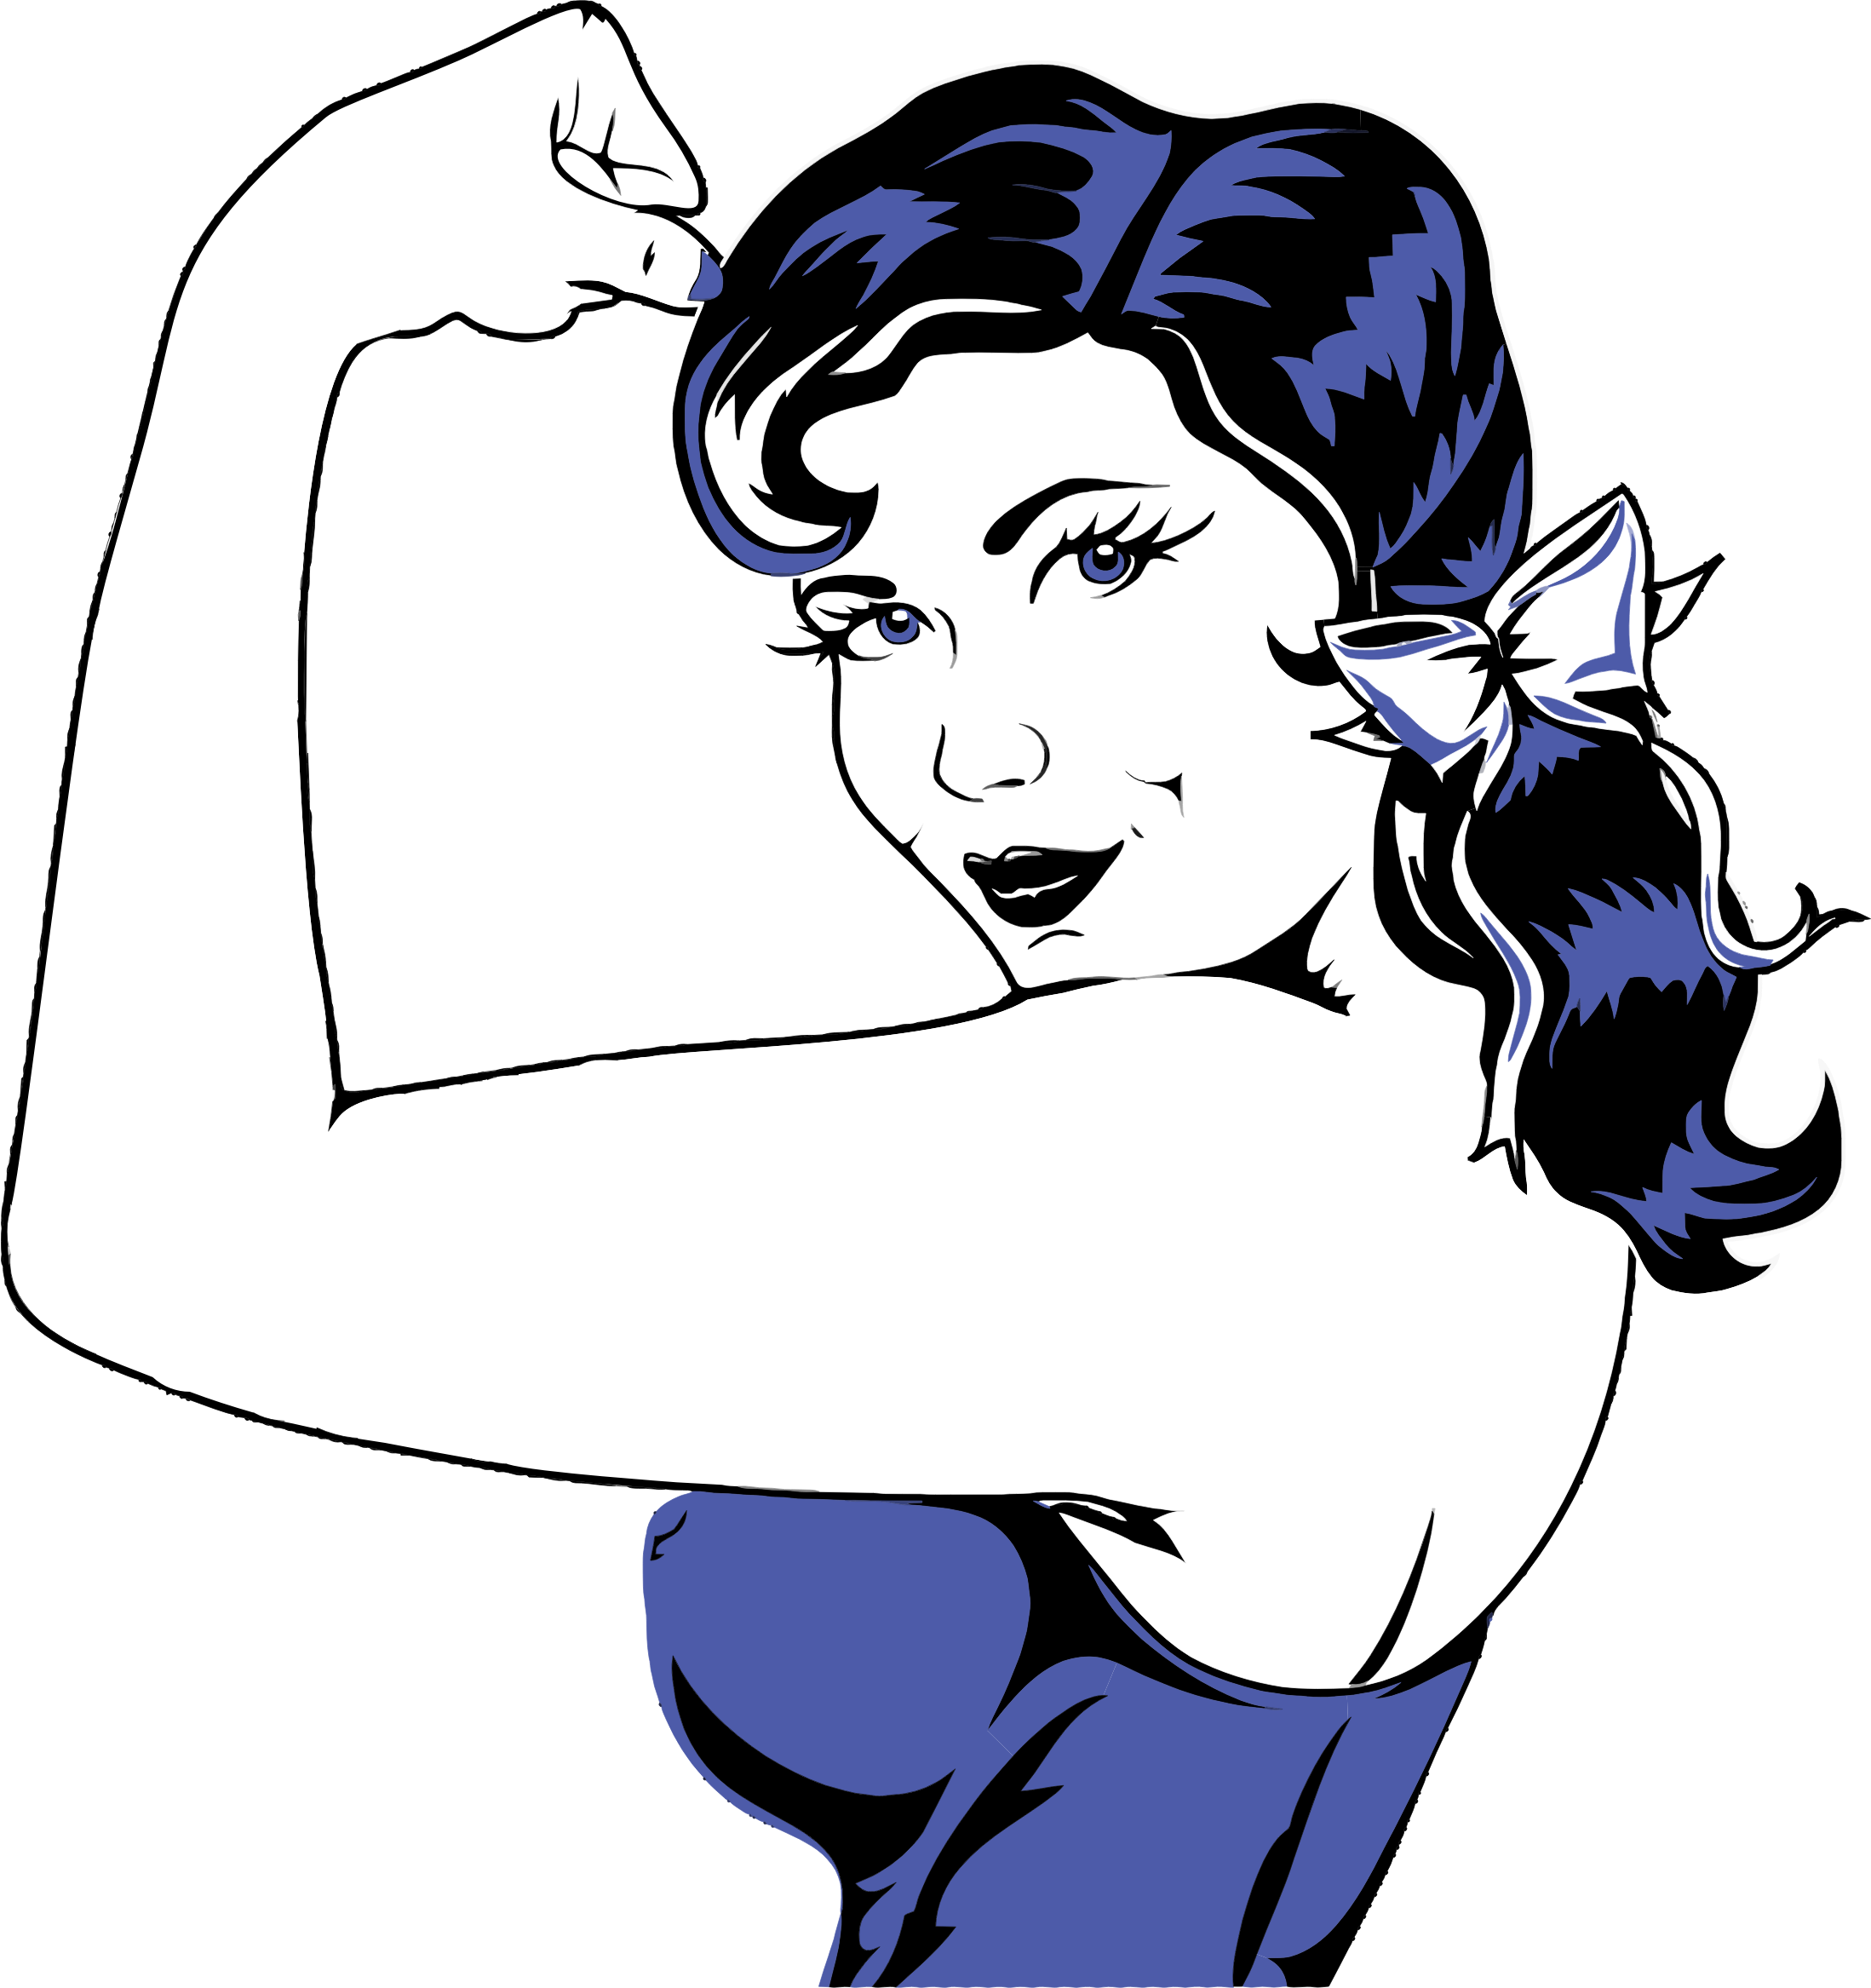 graphic transparent Flexing big image png. Muscle woman clipart